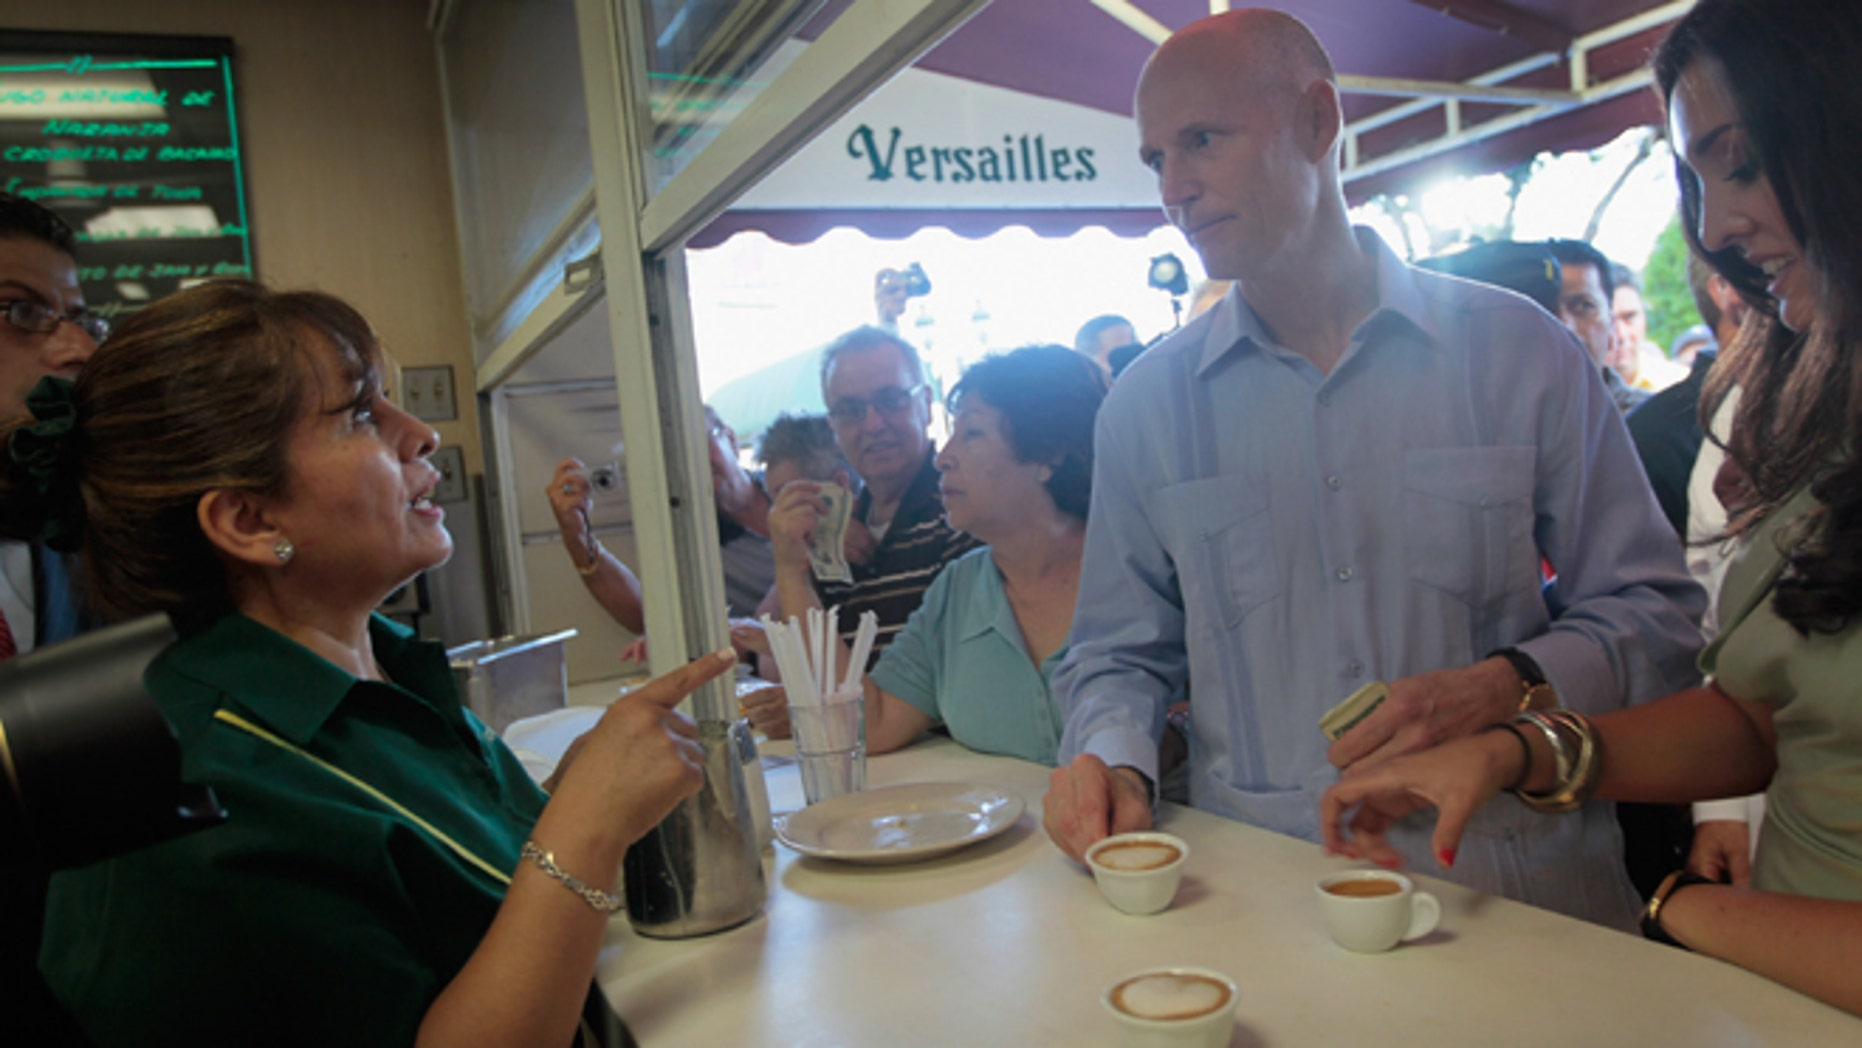 Florida Governor Rick Scott at a restaurant on July 12, 2011 in Miami, Florida.